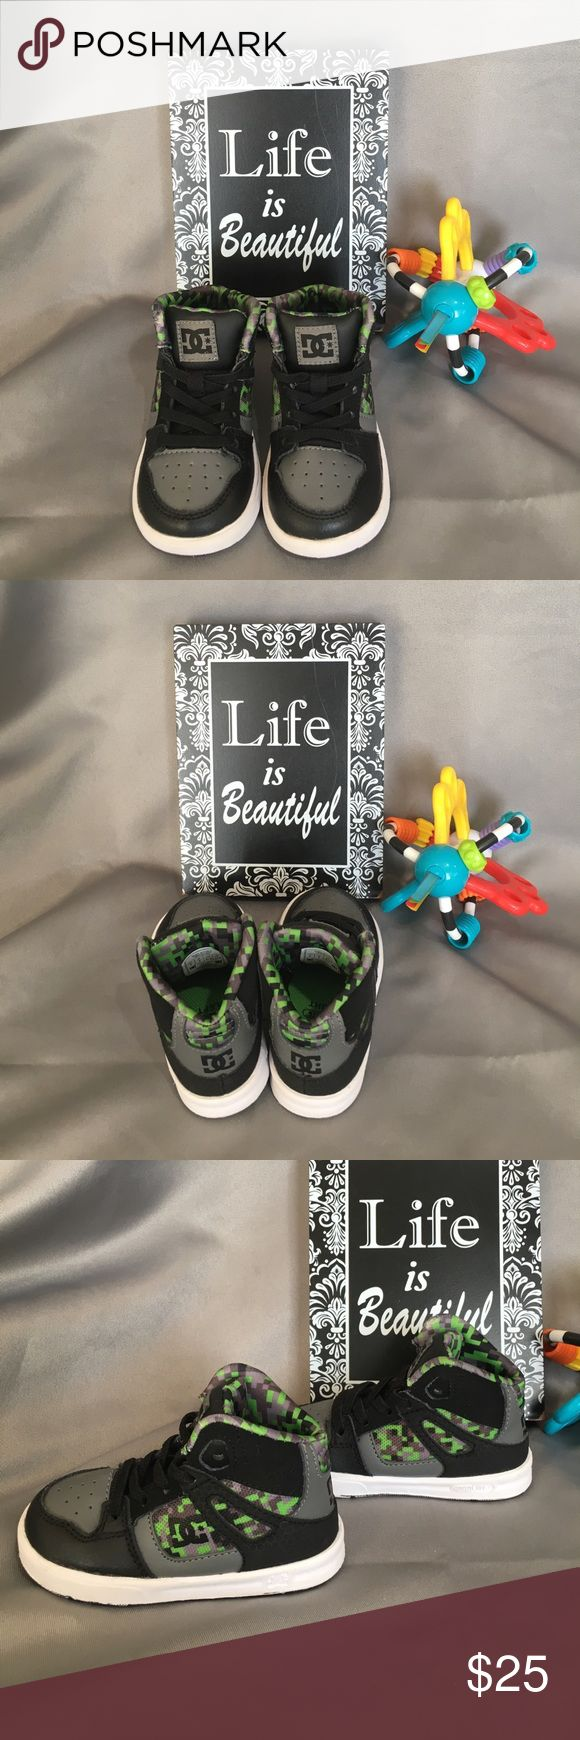 DC Skate Hightop Baby Shoes DC Skate high top baby shoes. Excellent used condition. Only worn a few times.  The bottoms have white on them that make it look as if unpainted them, however that is how they came. Bundle #113 DC Shoes Baby & Walker